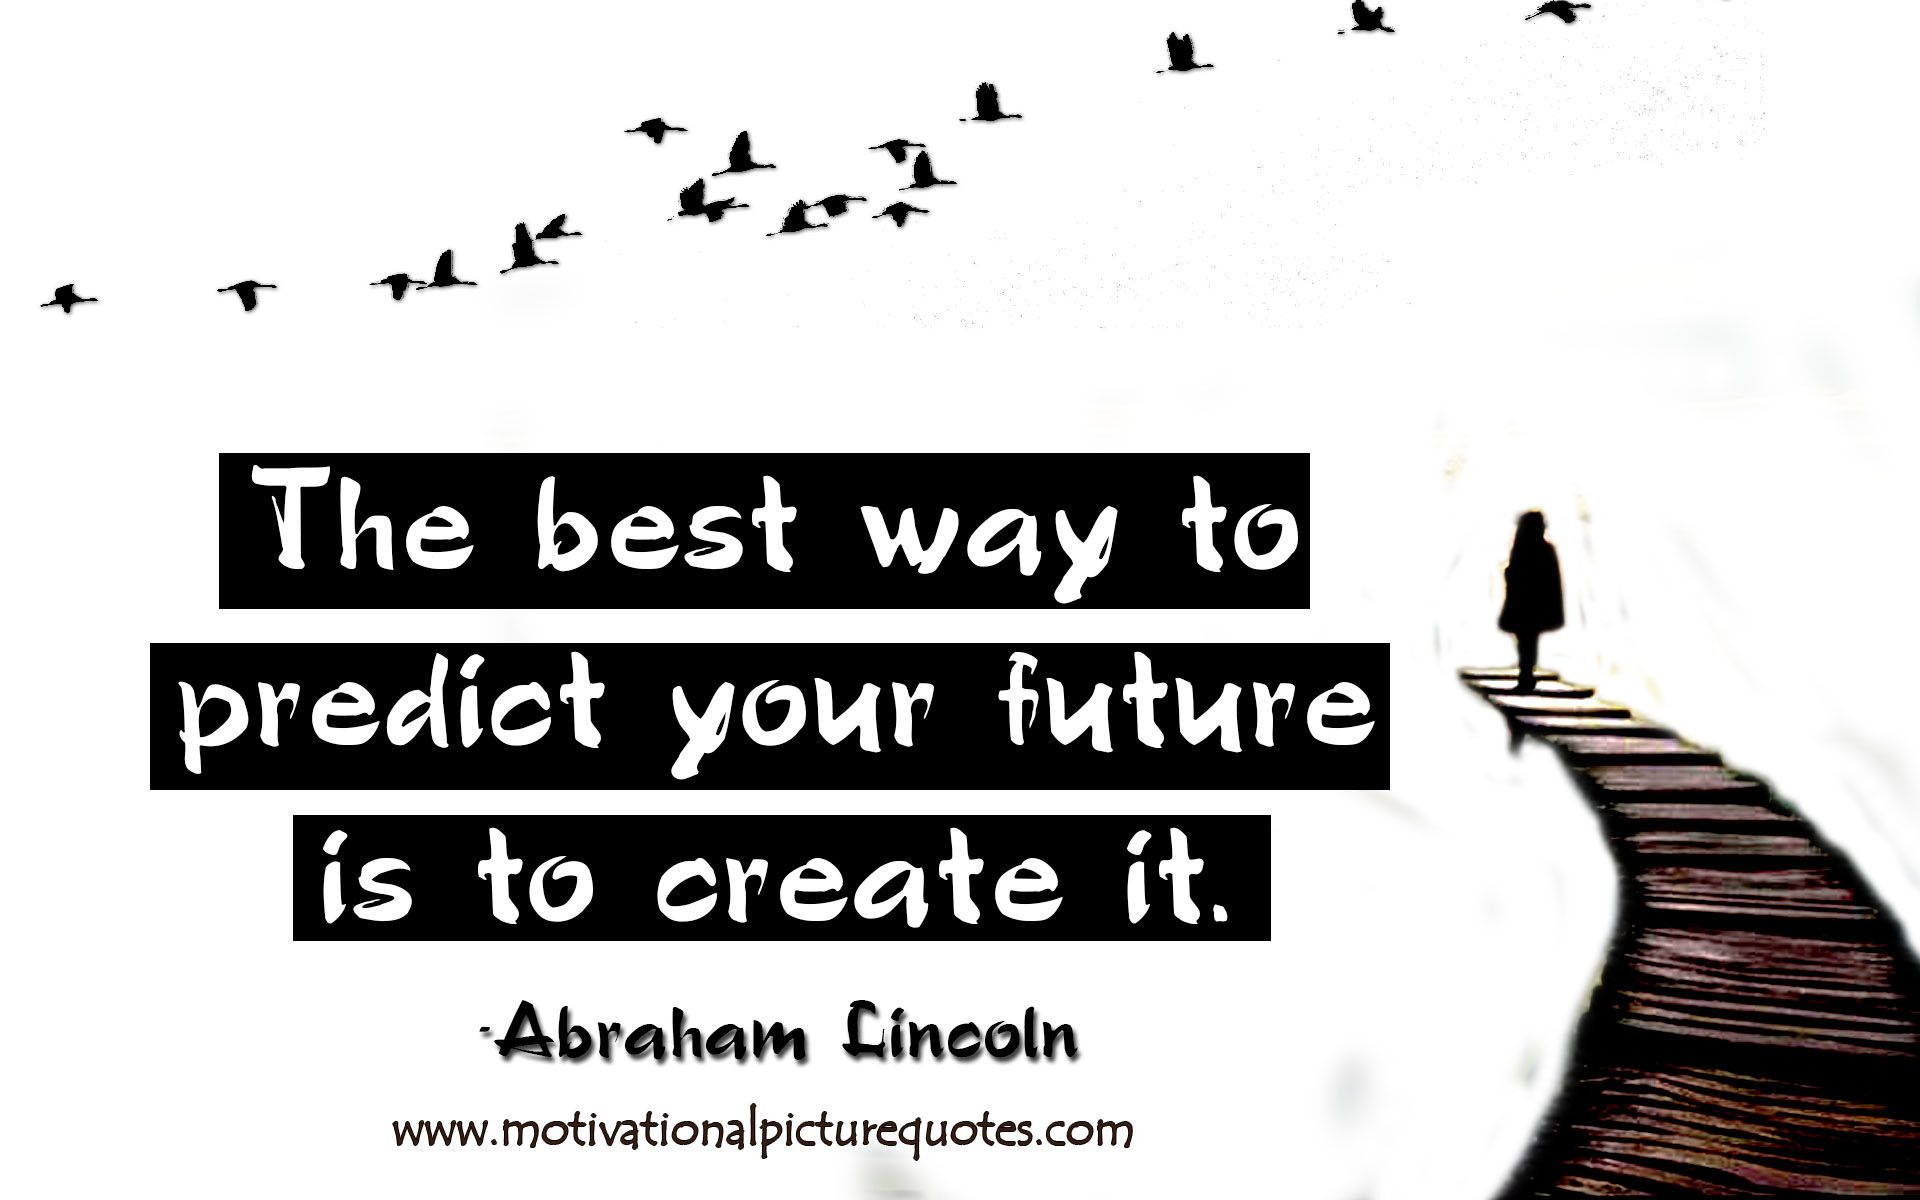 Inspirational quotes about future plans in life by